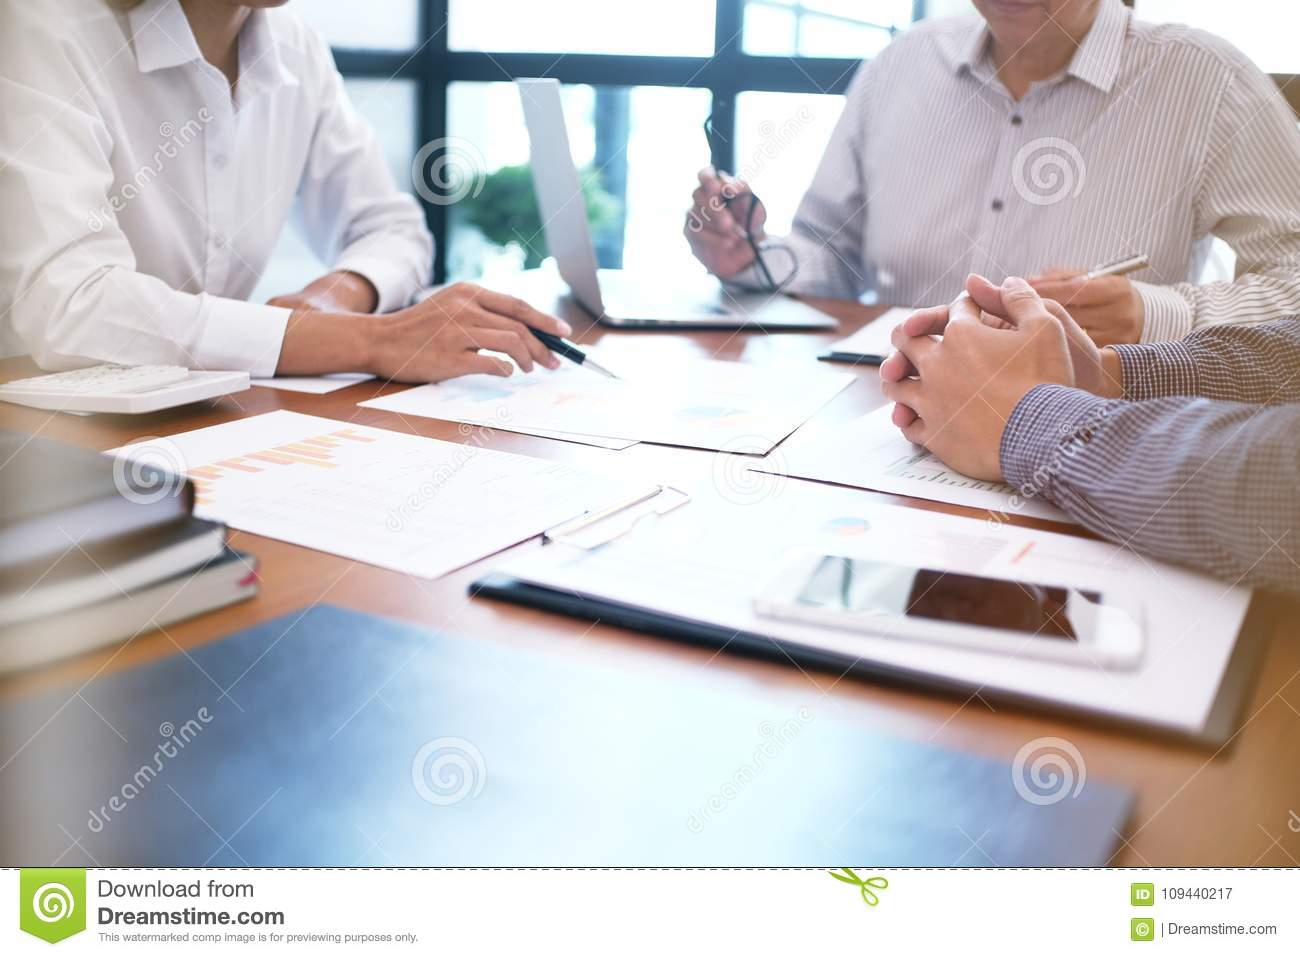 Business People Meeting Design Ideas Professional Investor